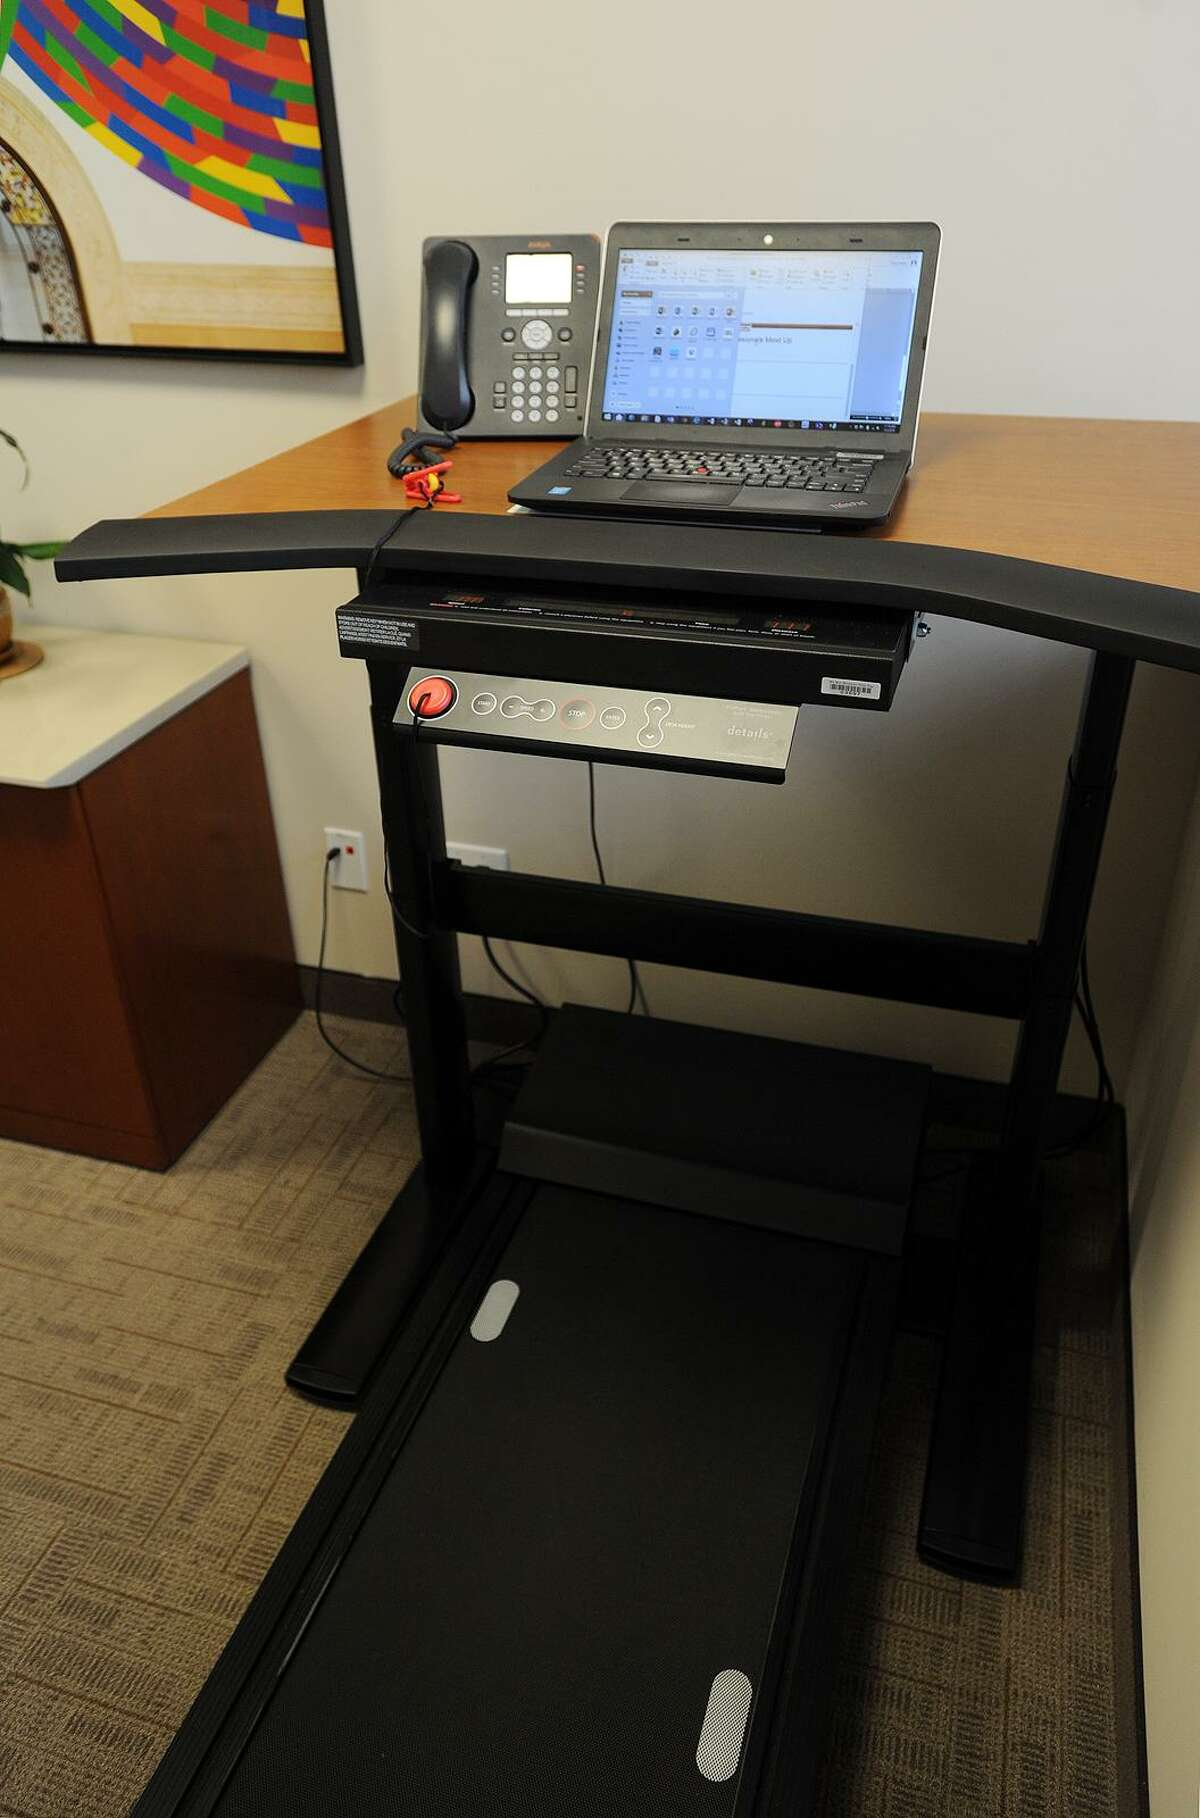 The Steelcase Walking Desk available for use by clients at Symphony Workplaces at 55 Greens Farms Road in Westport, Conn.